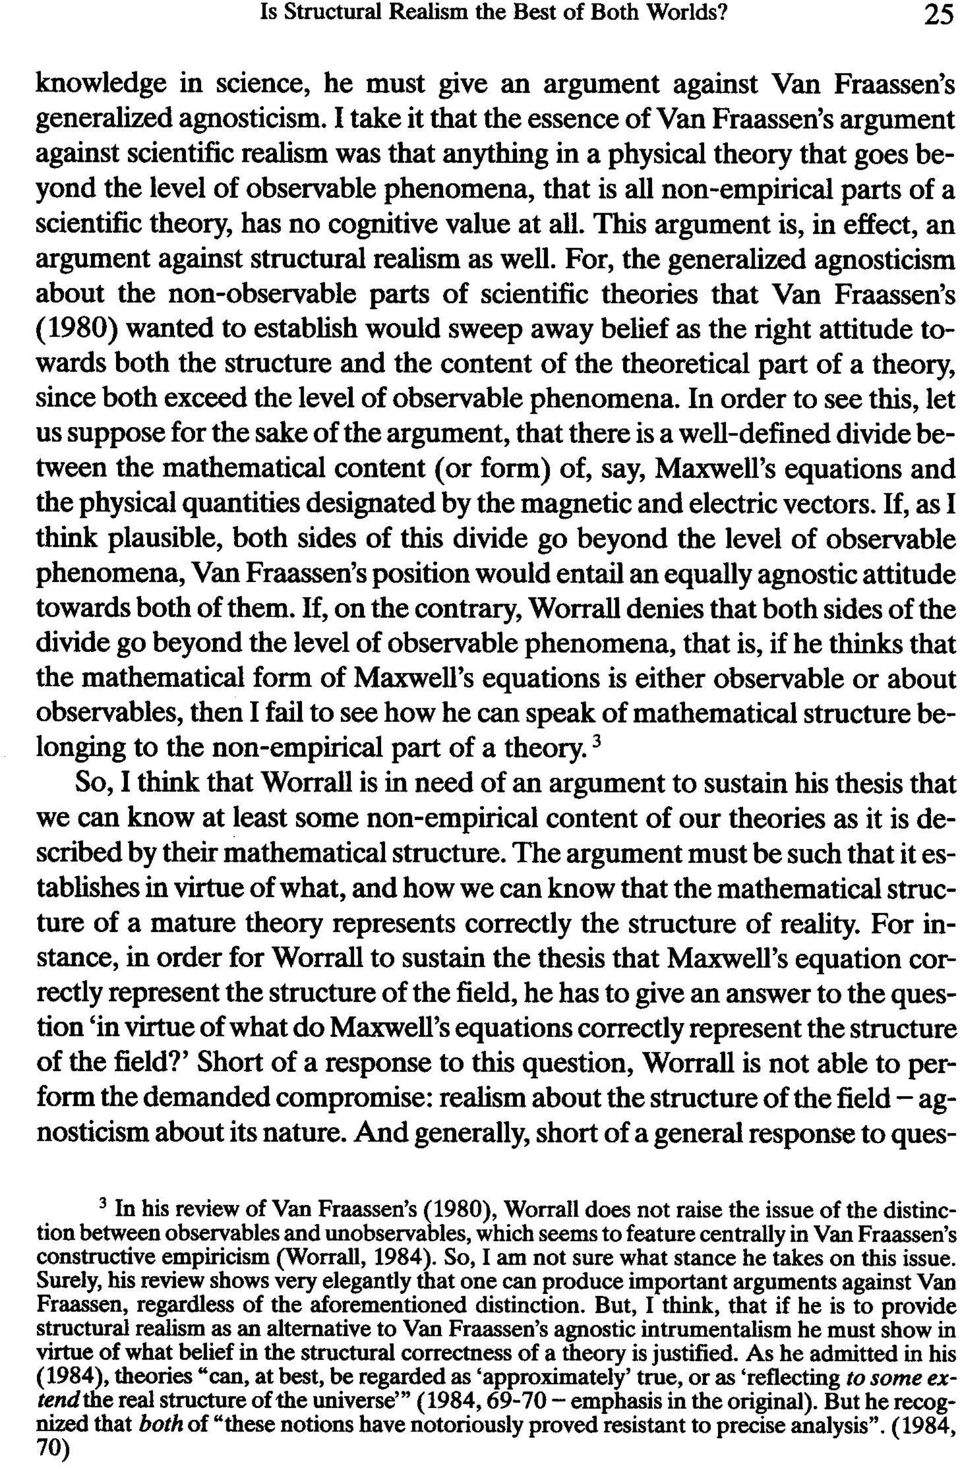 parts of a scientific theory, has no cognitive value at all. This argument is, in effect, an argument against structural realism as well.